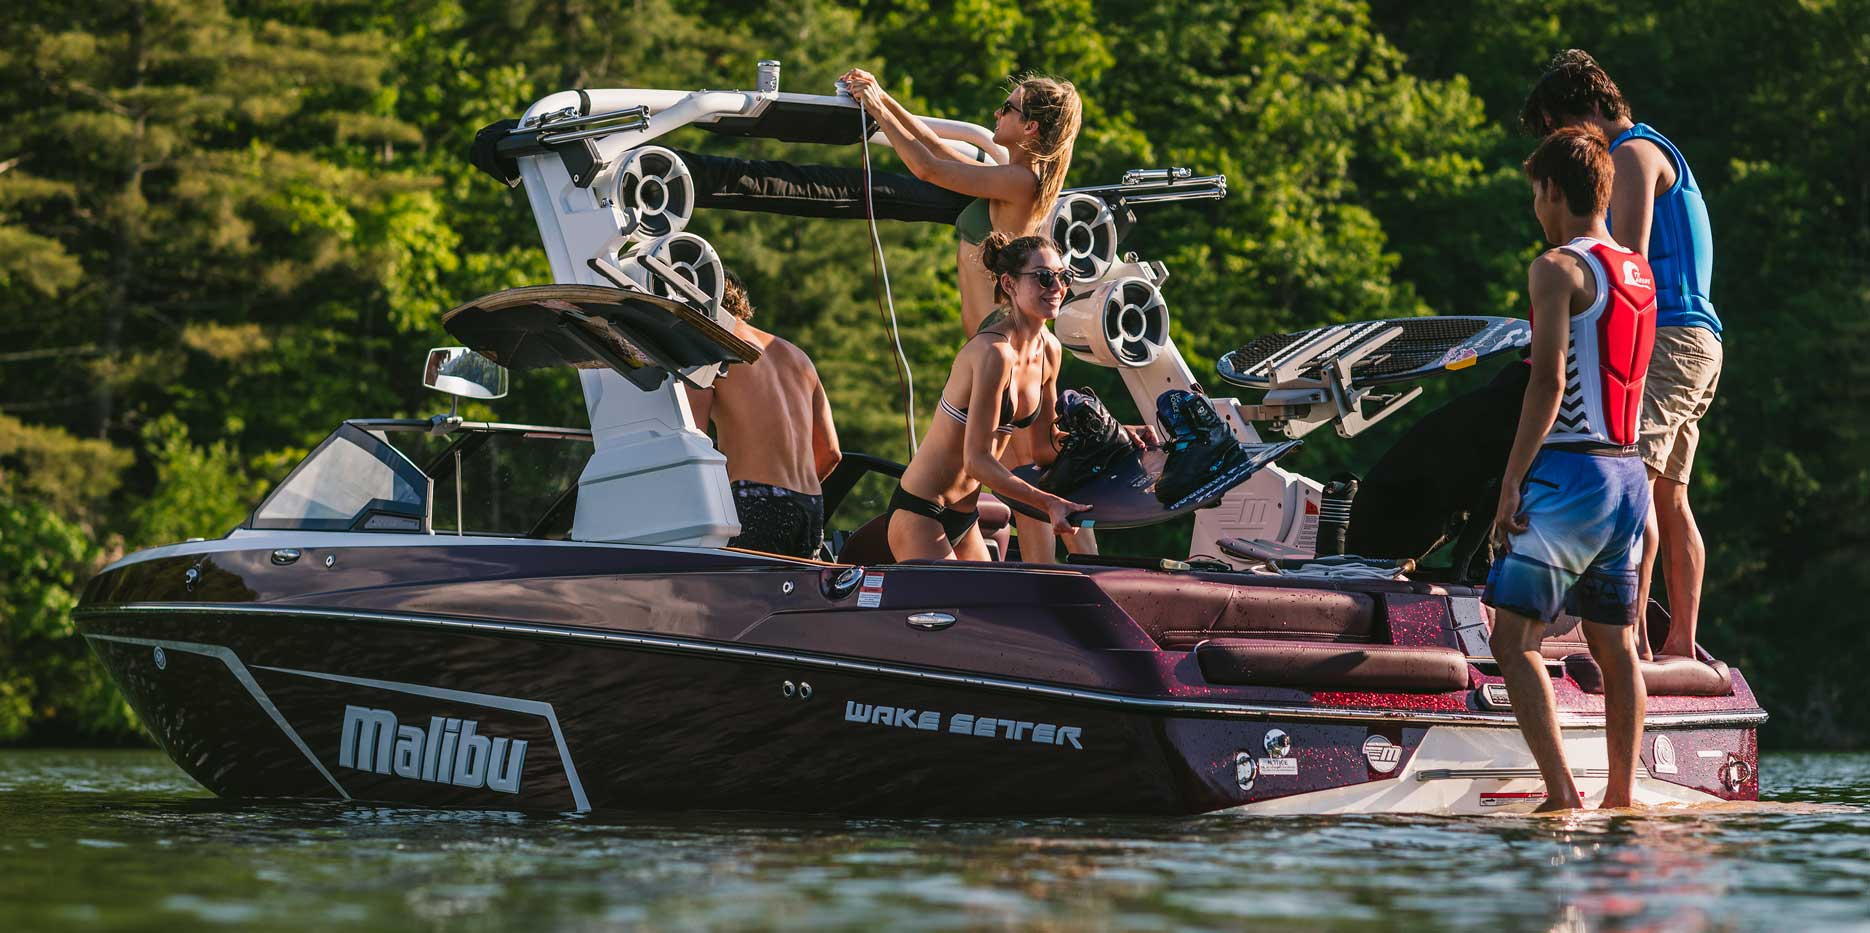 Setting up for doubles wakeboarding behind the Malibu 22 LSV.